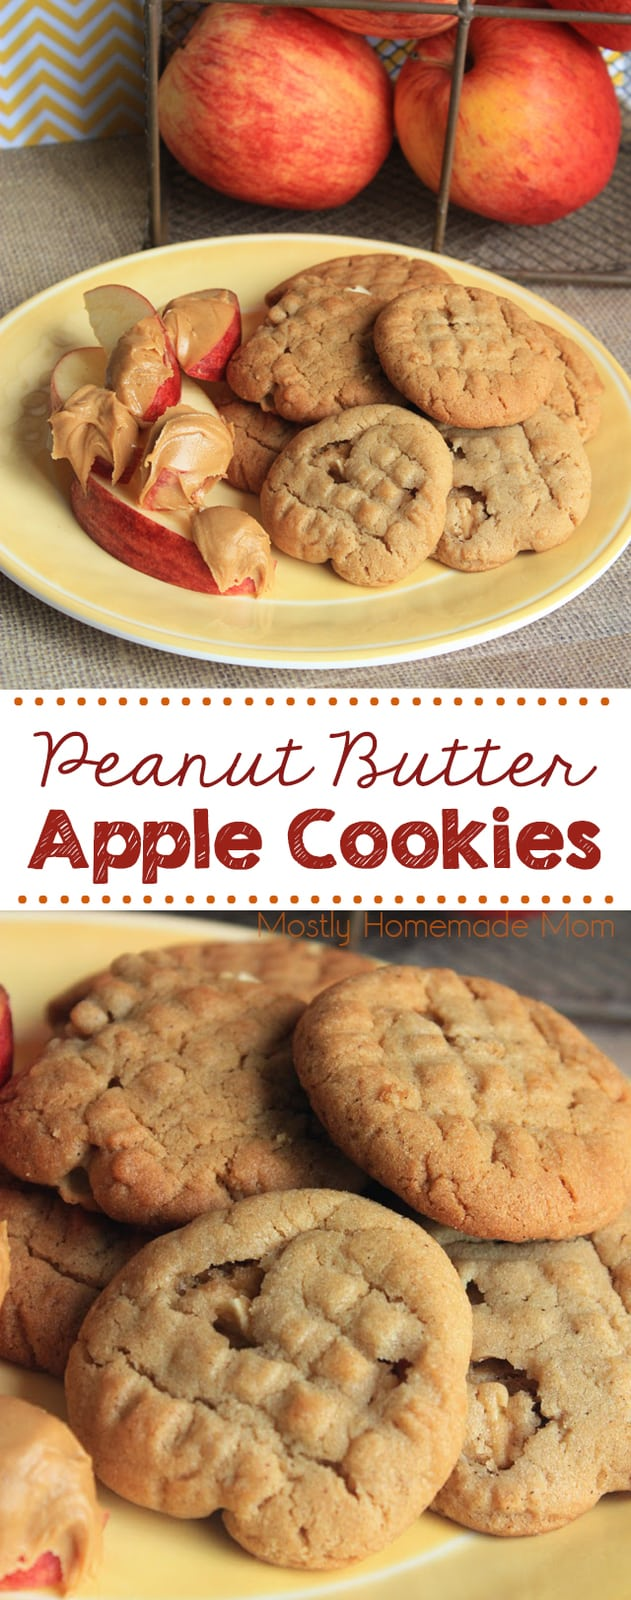 Apple Cookies with creamy peanut butter, cinnamon, and real diced apples! The perfect morning or afternoon treat with coffee! #apples #appleseason #cookies #christmascookies #recipe #dessert